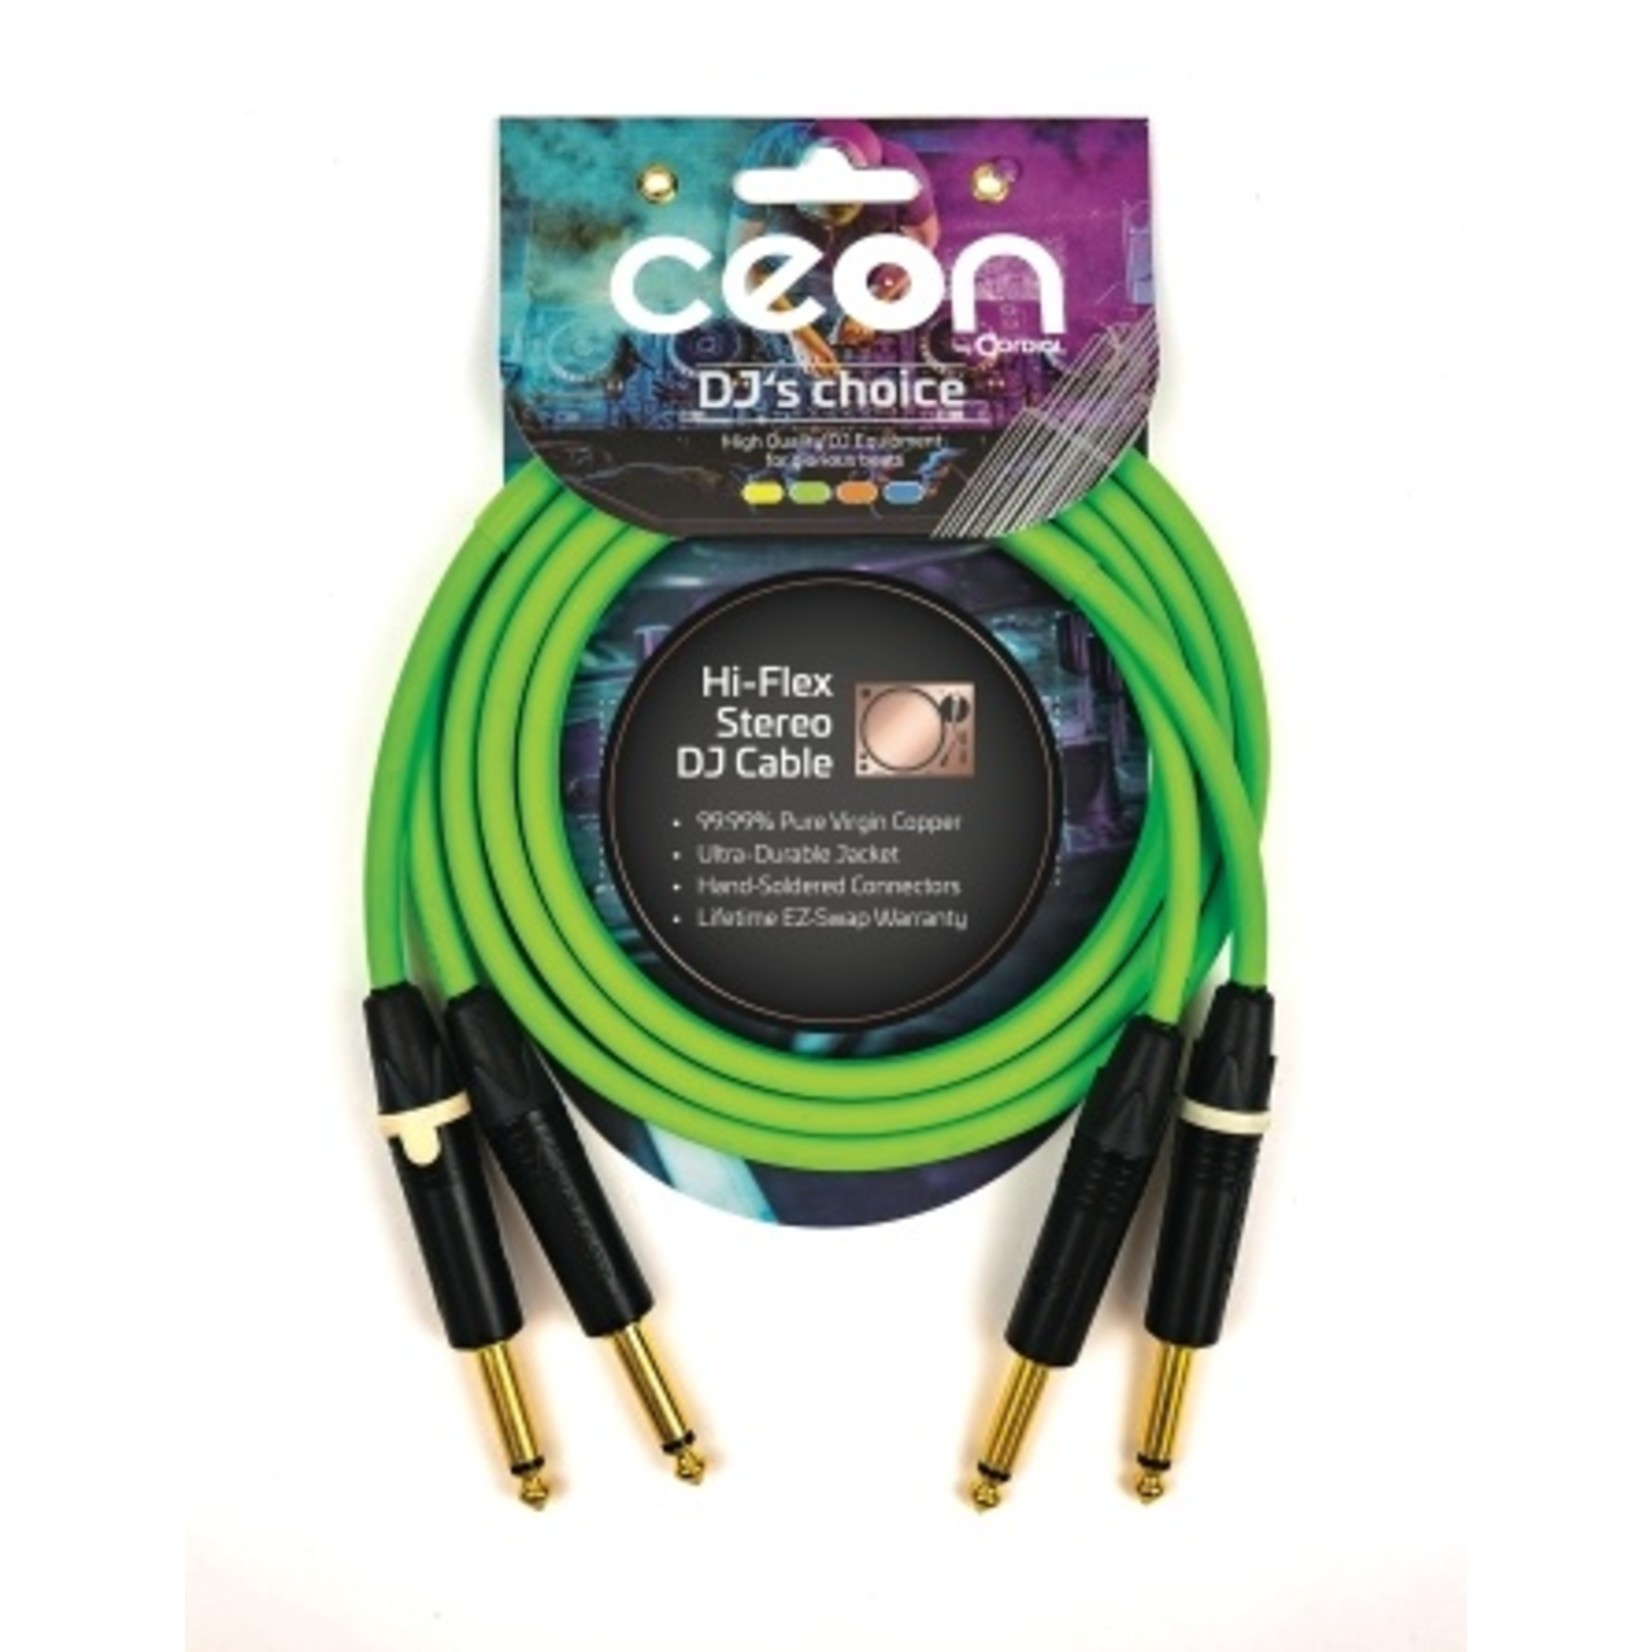 "Cordial Cables Cordial Cables Premium DJ Dual/Mono (Black Light) Cable, Ceon Series - Hi-Flex DJ's Choice Stereo 1/4"" TS to 1/4"" TS 10-Foot Cable: Neon Green"